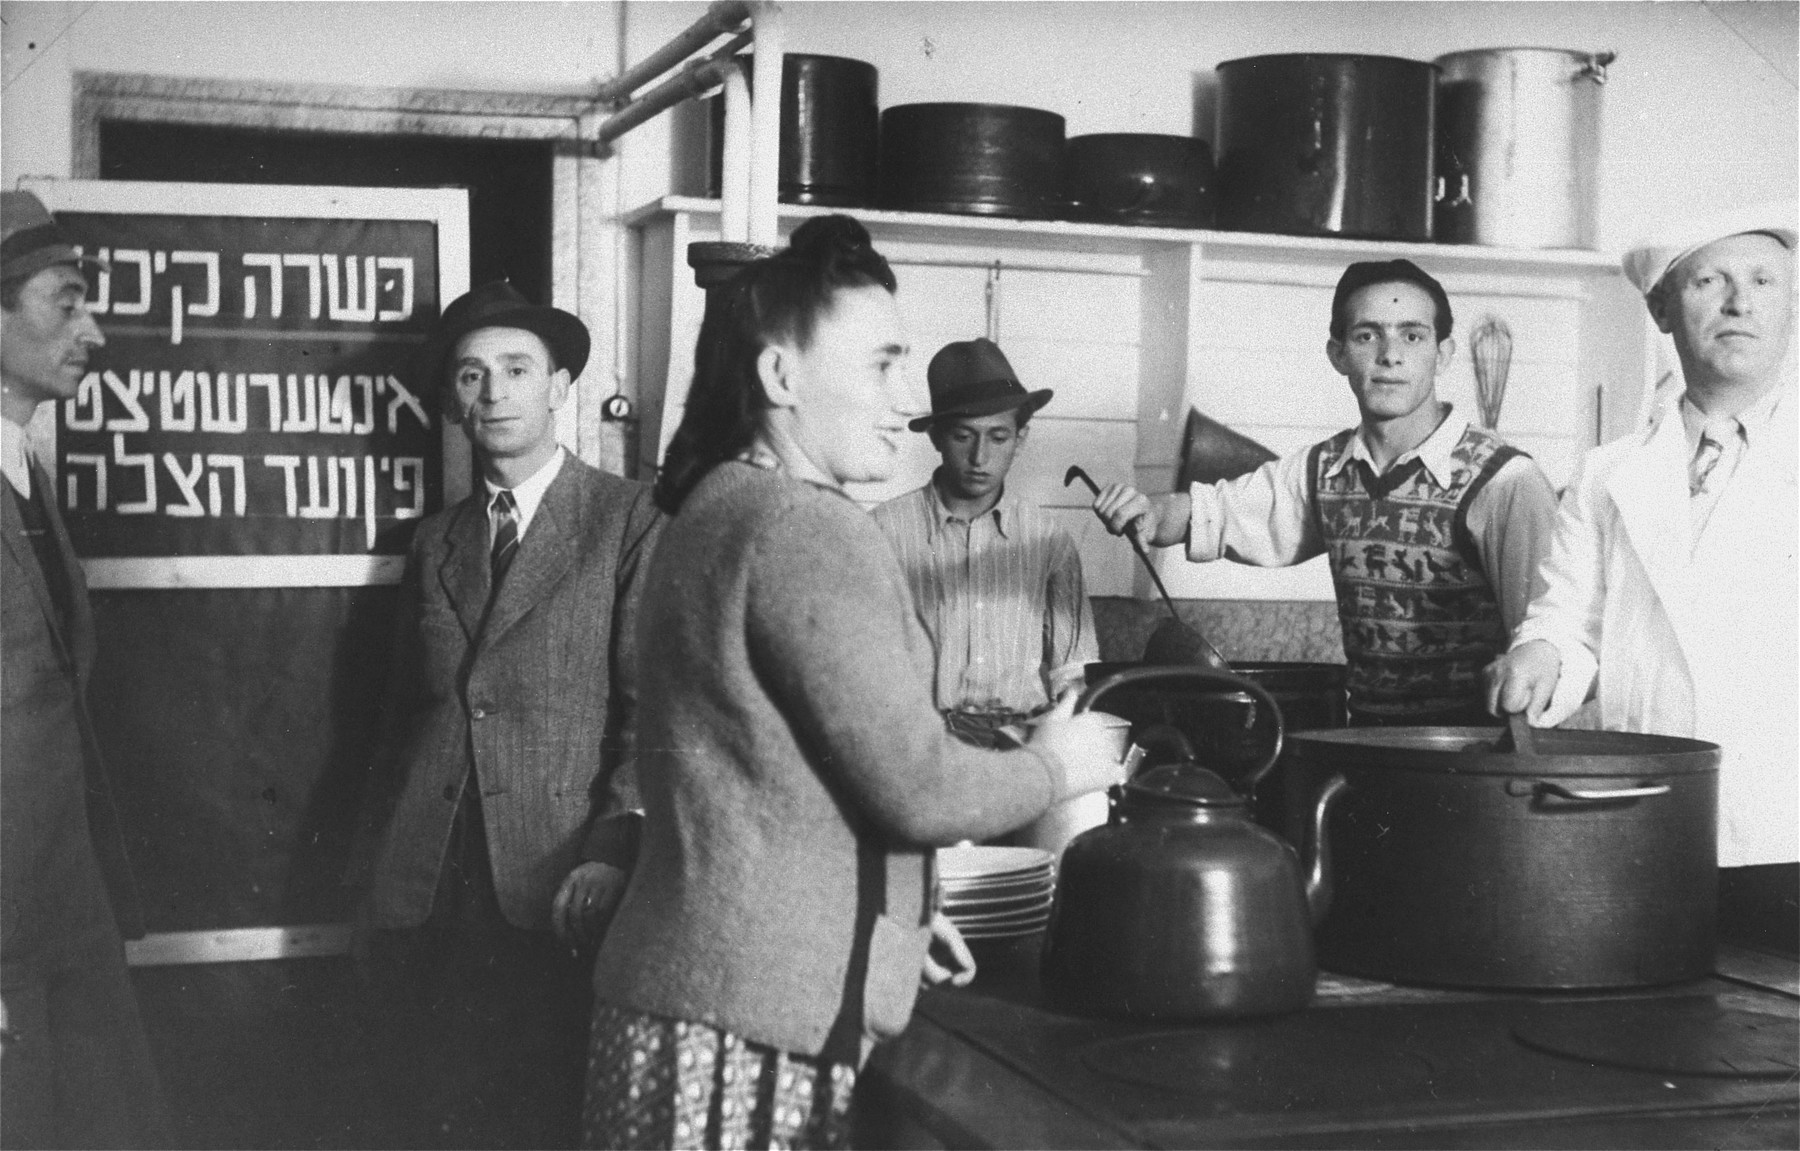 """Jewish DPs at work in the kosher kitchen at the Mittenwald displaced persons camp.    The Yiddish sign on the door reads: """"Kosher kitchen, underwritten by the Vaad Hatzala [Rescue Committee]."""